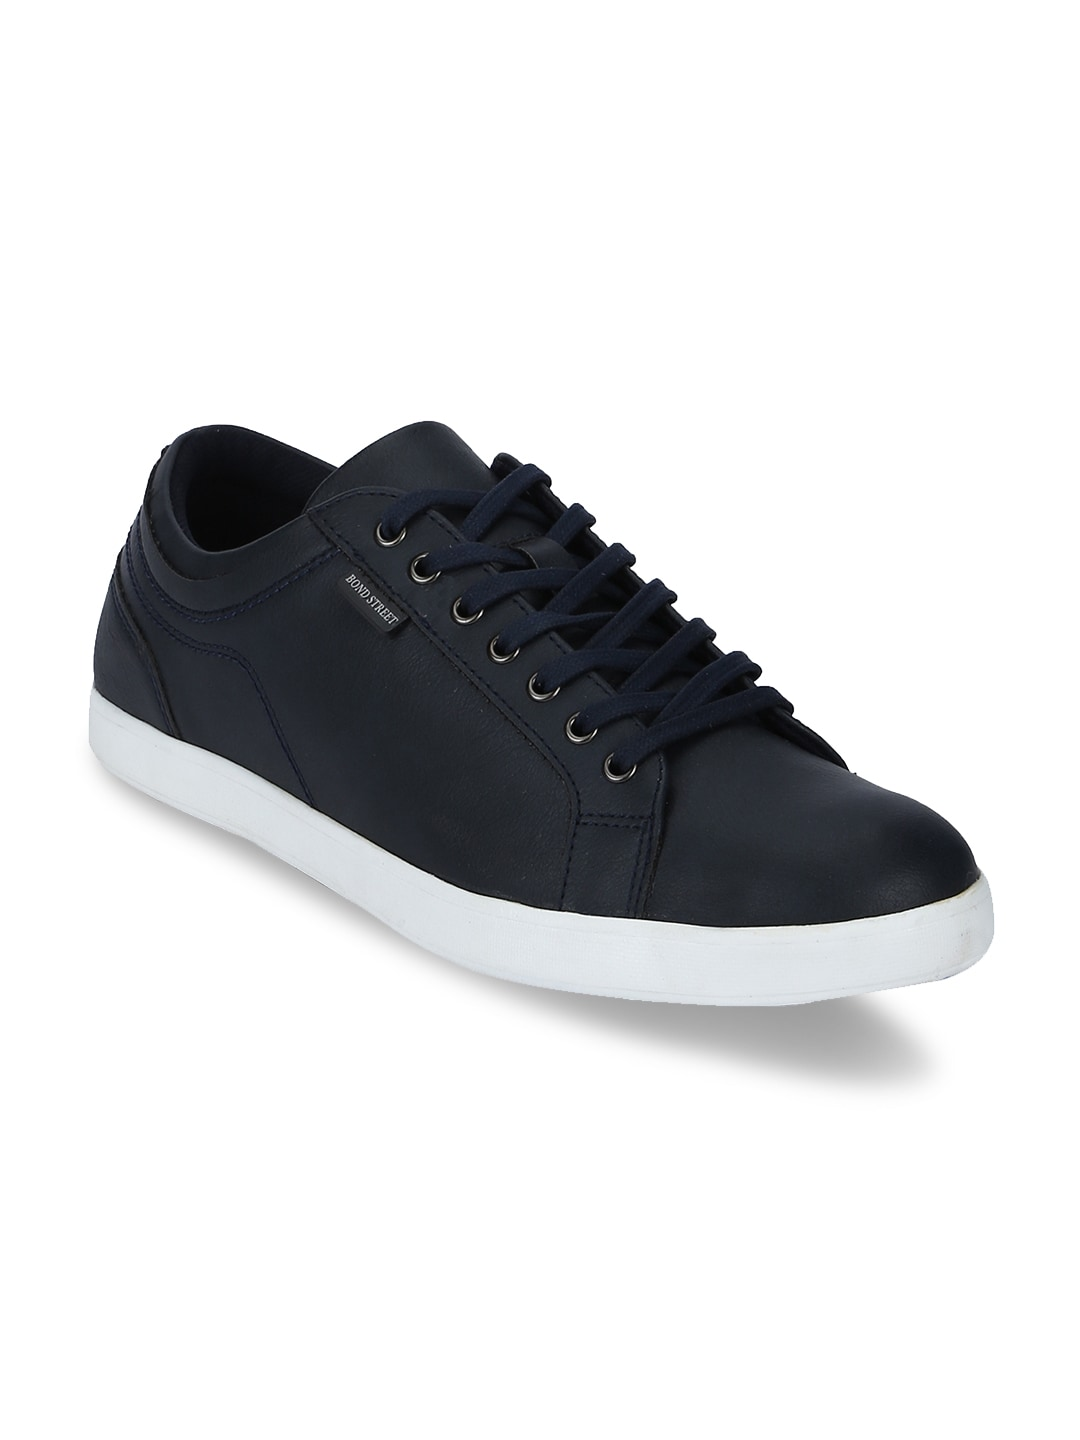 81c744f7c3a Casual Shoes For Men - Buy Casual   Flat Shoes For Men